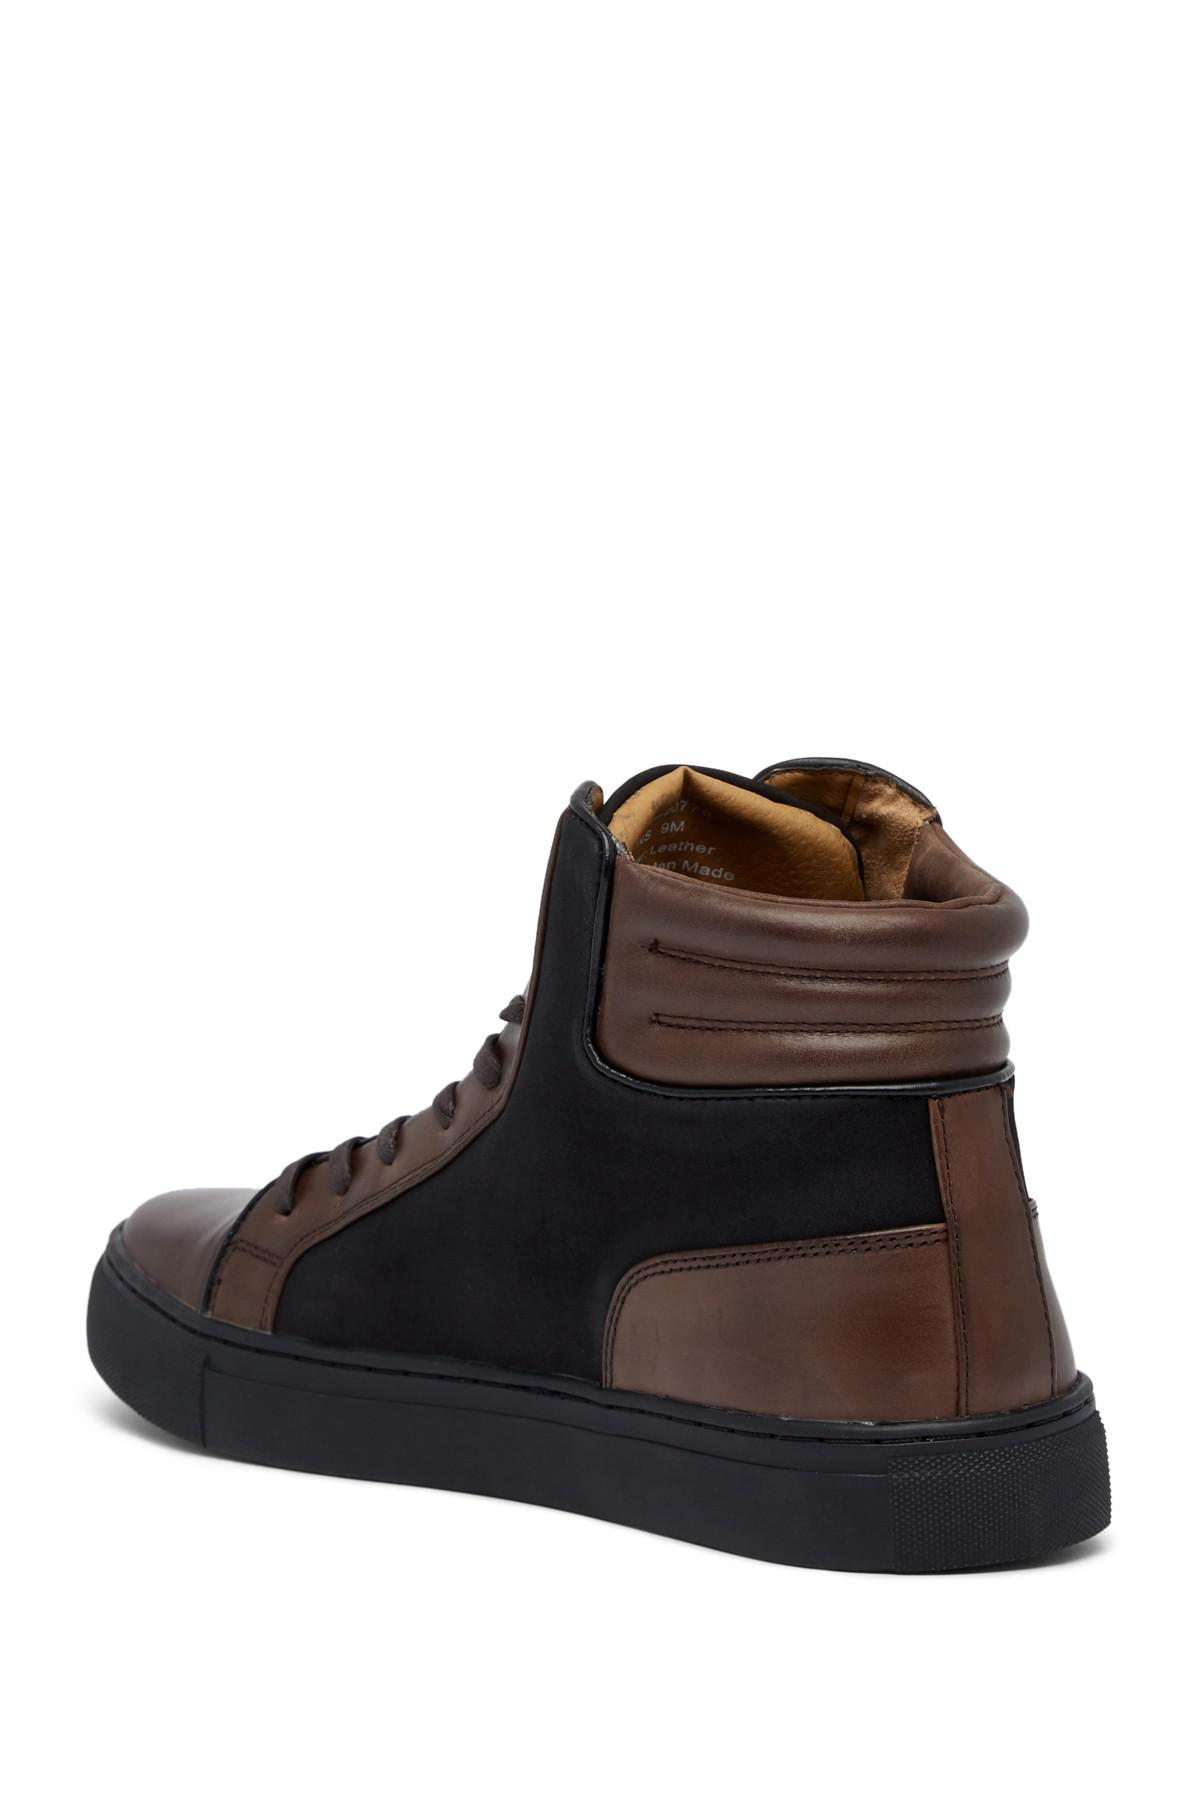 Kenneth Cole Reaction Contrast Leather Hi-Top Sneaker fuDtisfzf